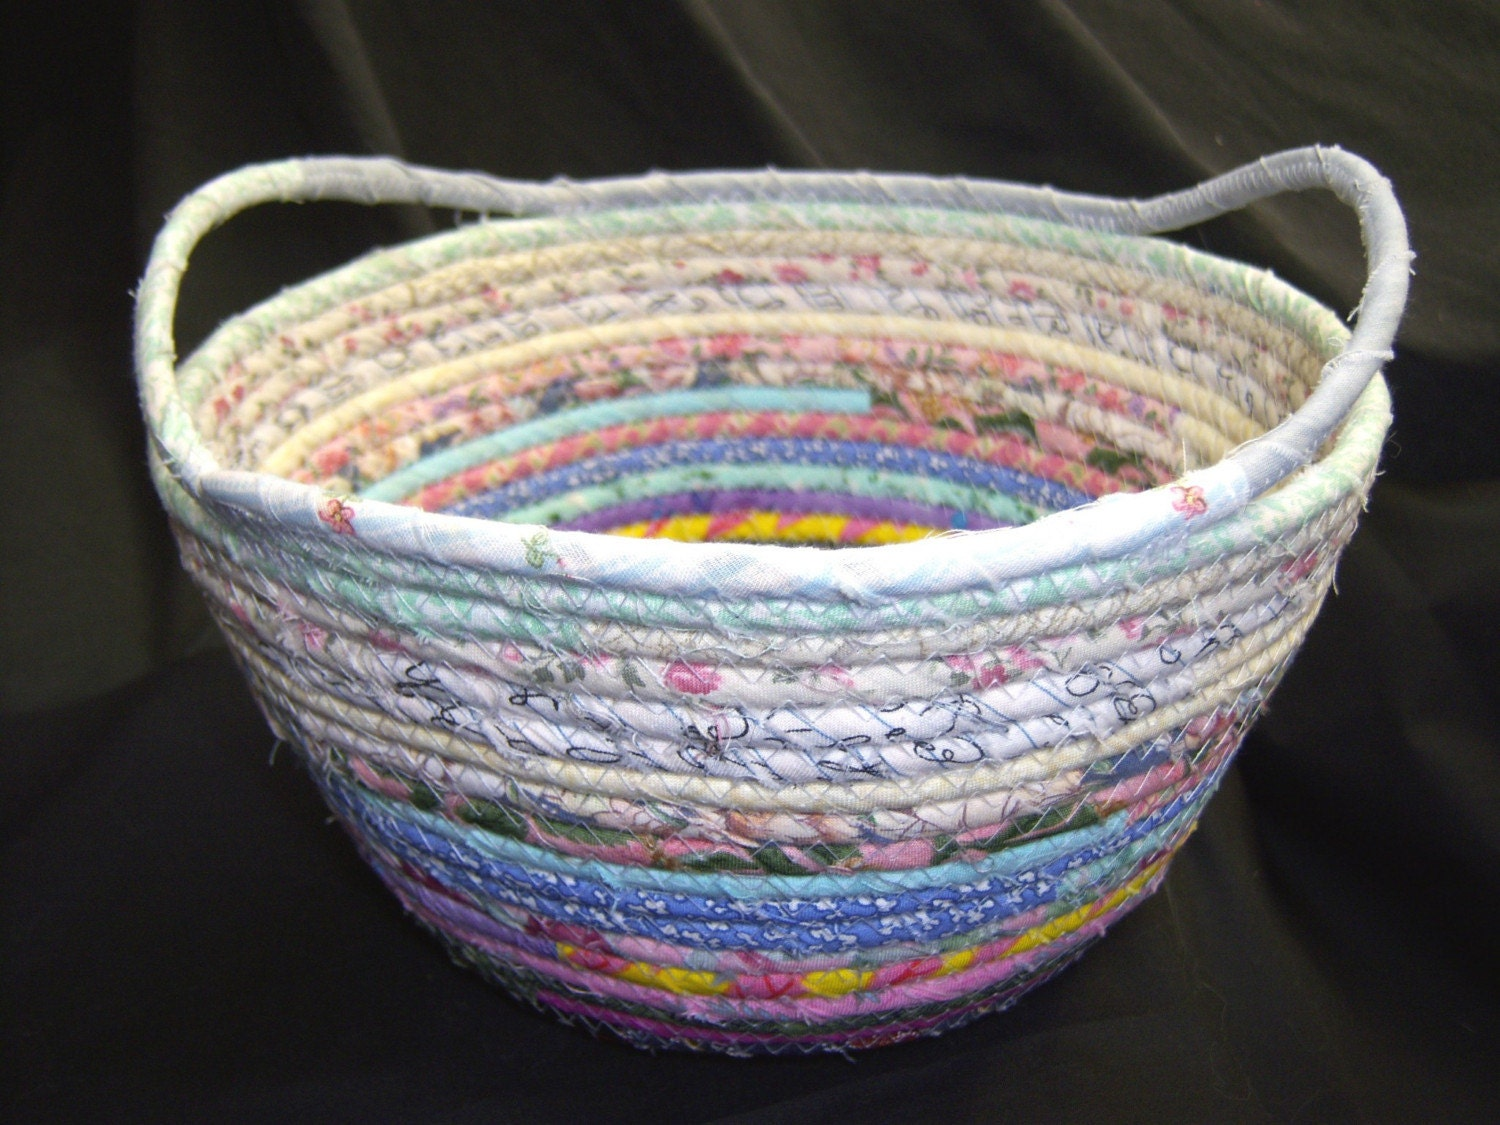 how to clean soft woven baskets